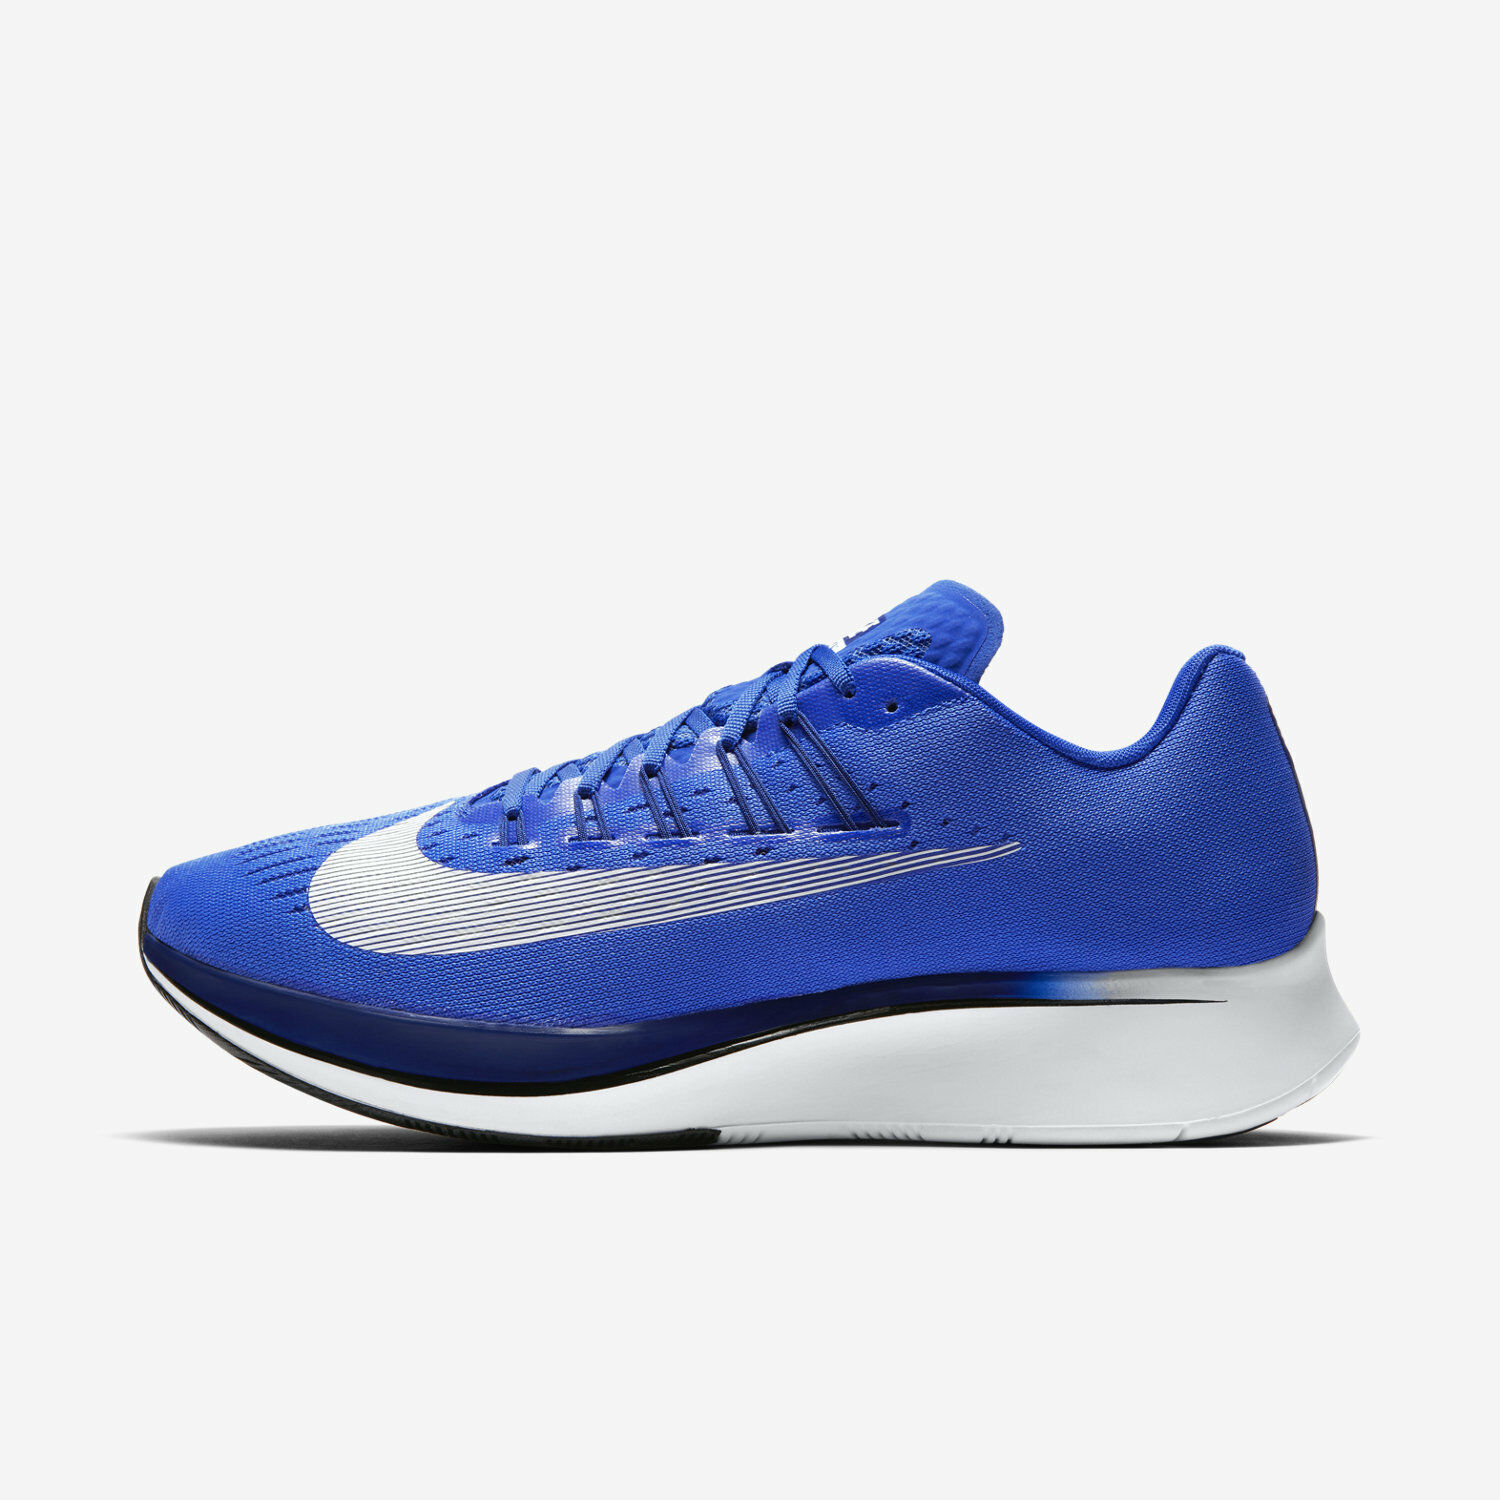 Mens Nike Zoom Fly Sz 9-10.5 Hyper Royal/White 880848-411 FREE SHIPPING The latest discount shoes for men and women